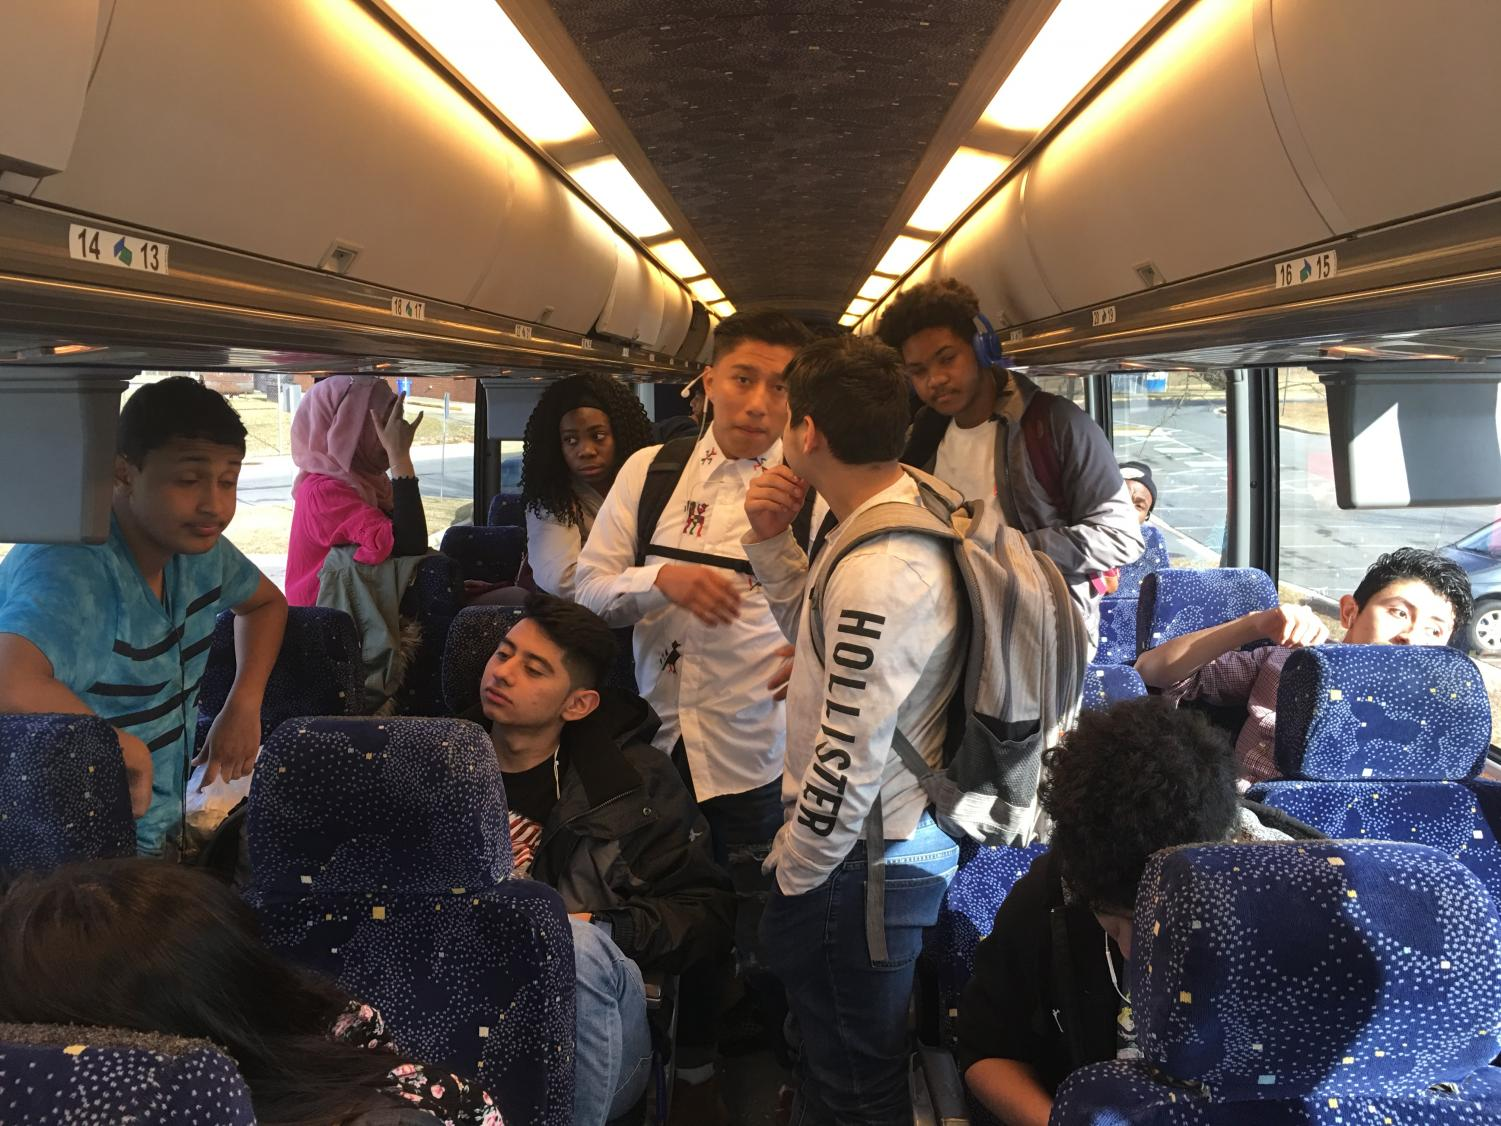 ESOL students on the bus to see the production of Hamlet at the Shakespeare Theatre in Washington, DC